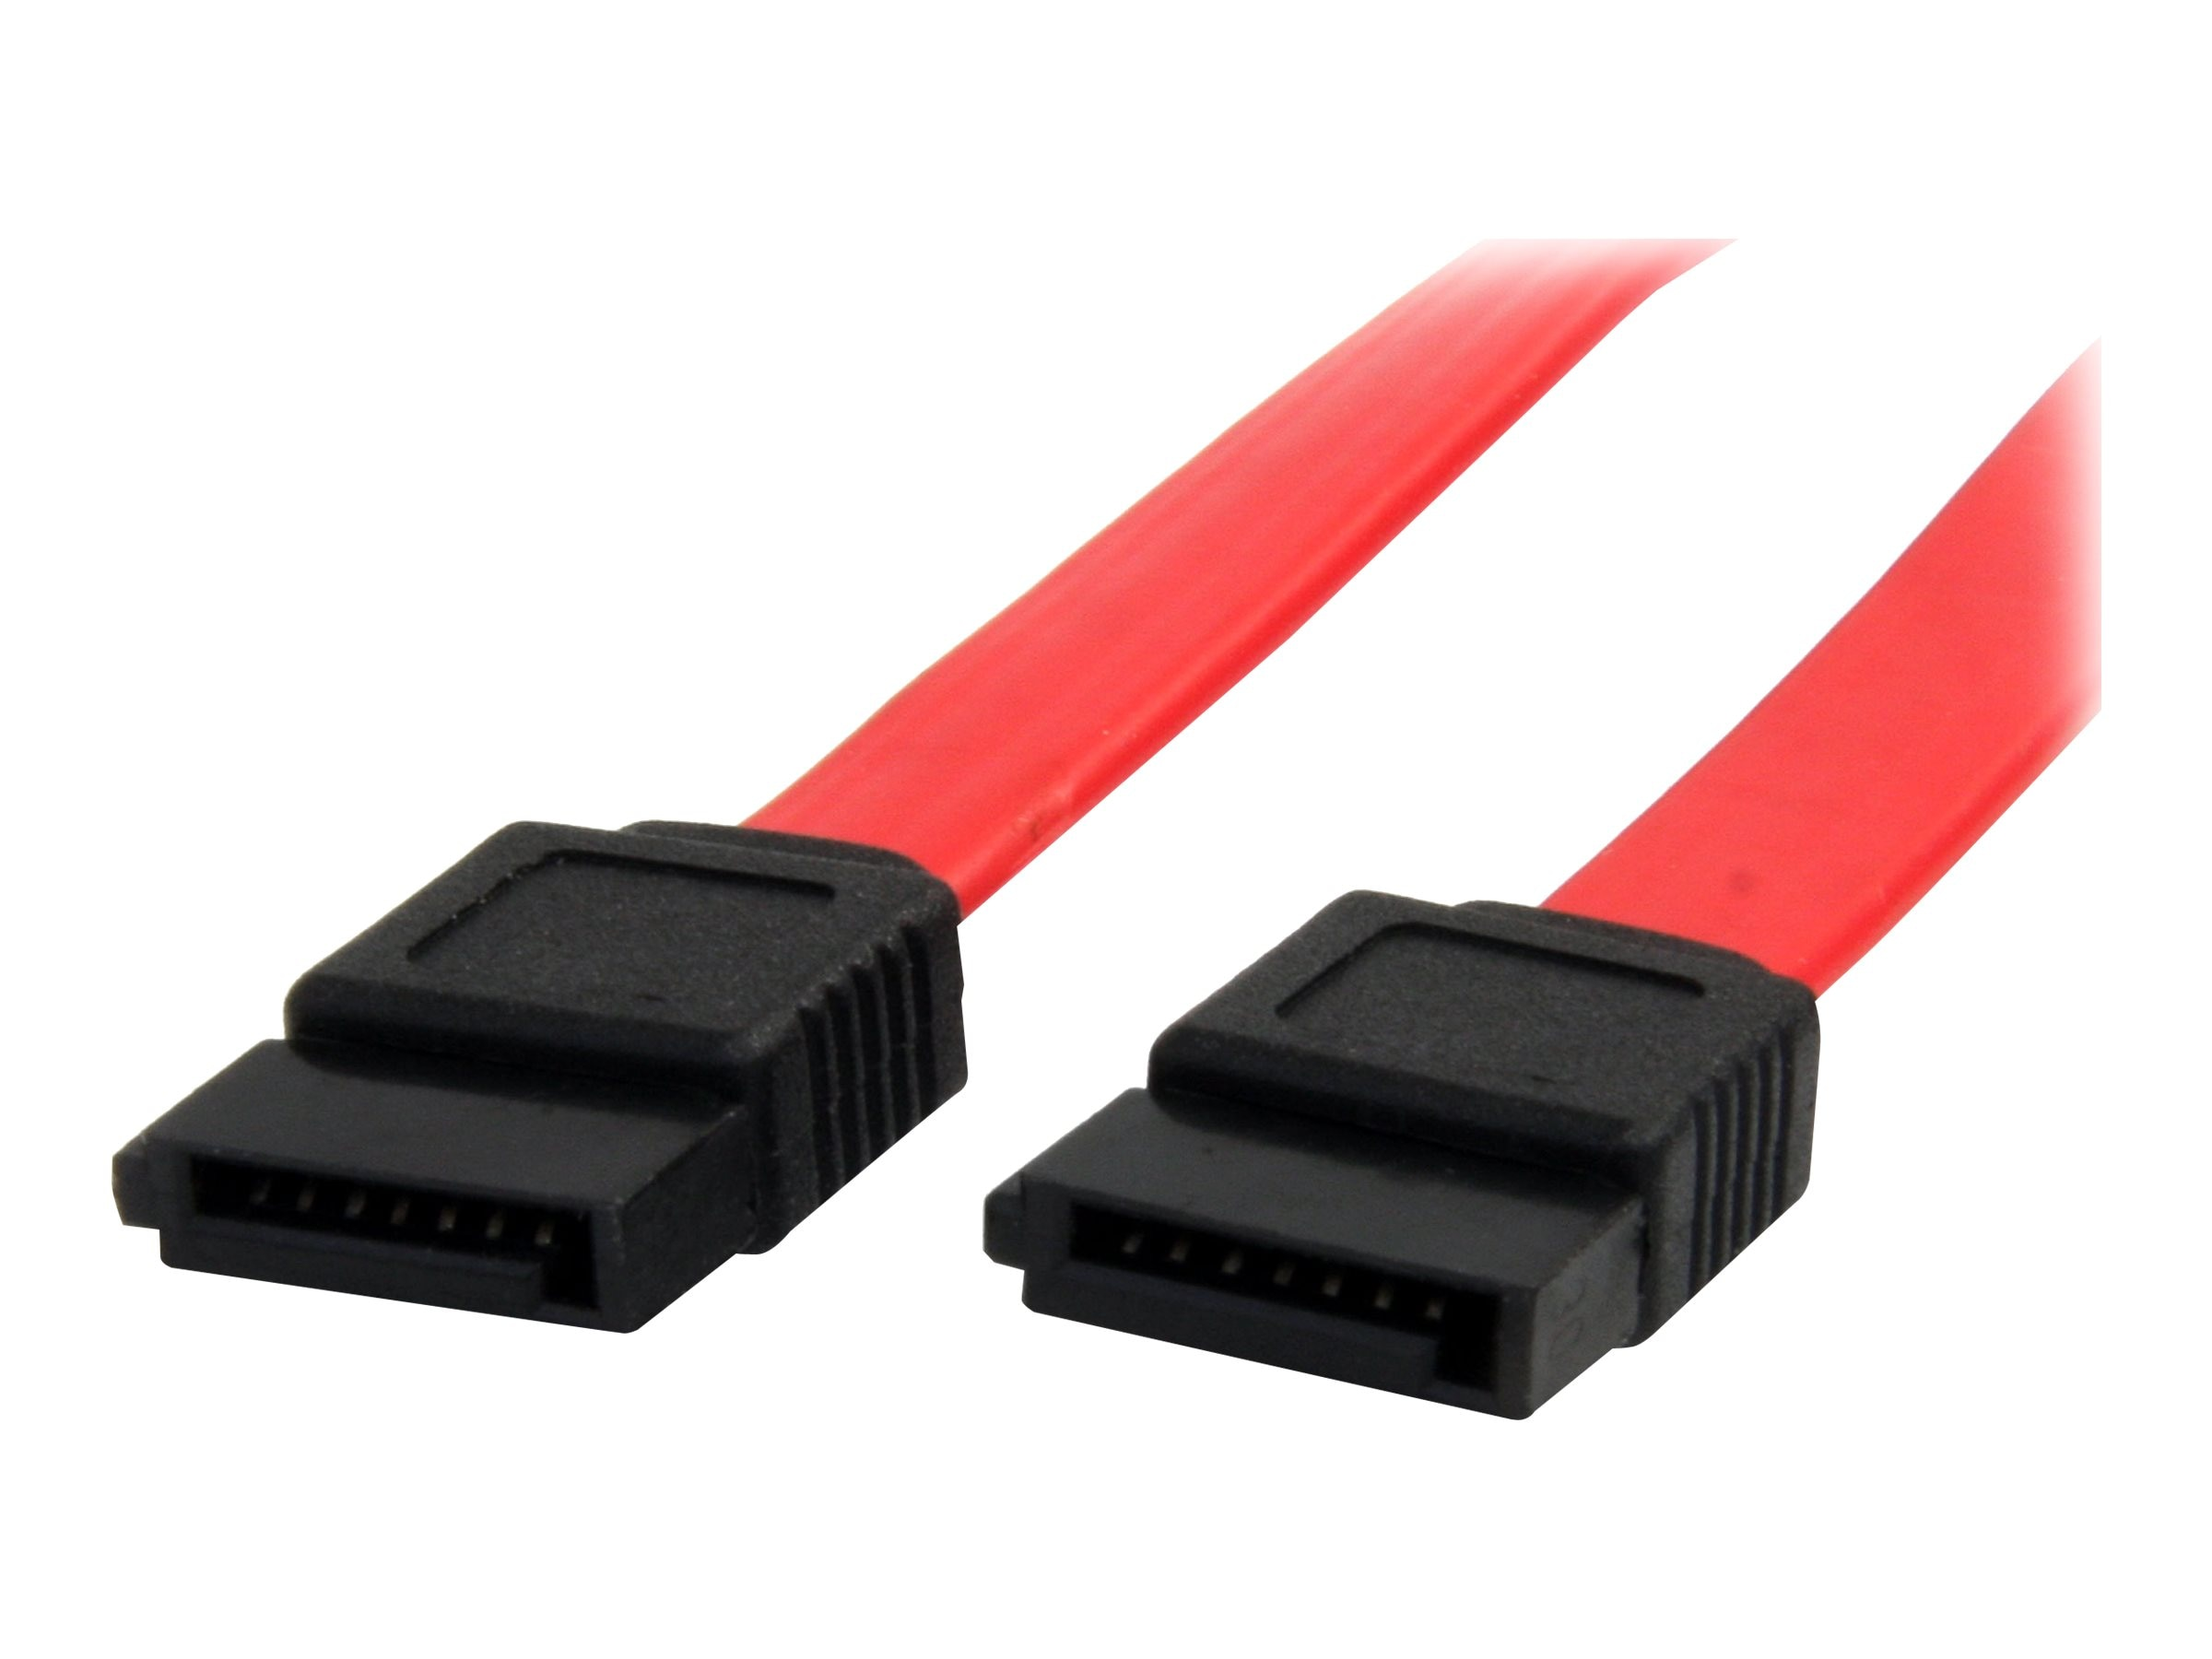 StarTech.com 6 SATA to SATA Cable Red